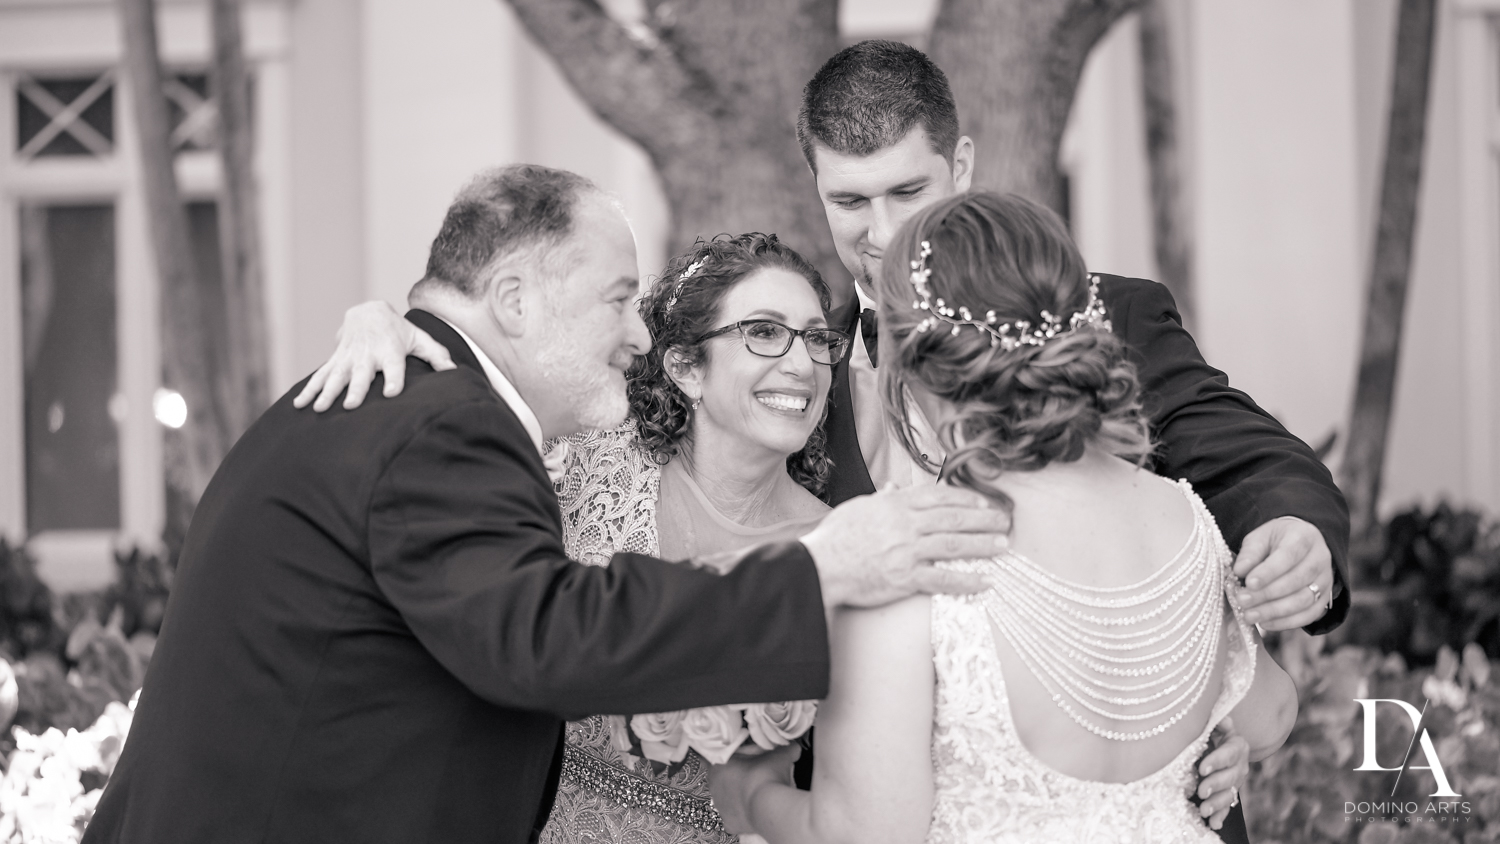 Candid family photo at Romantic Outdoors Wedding at Woodfield Country Club in Boca Raton, Florida by Domino Arts Photography